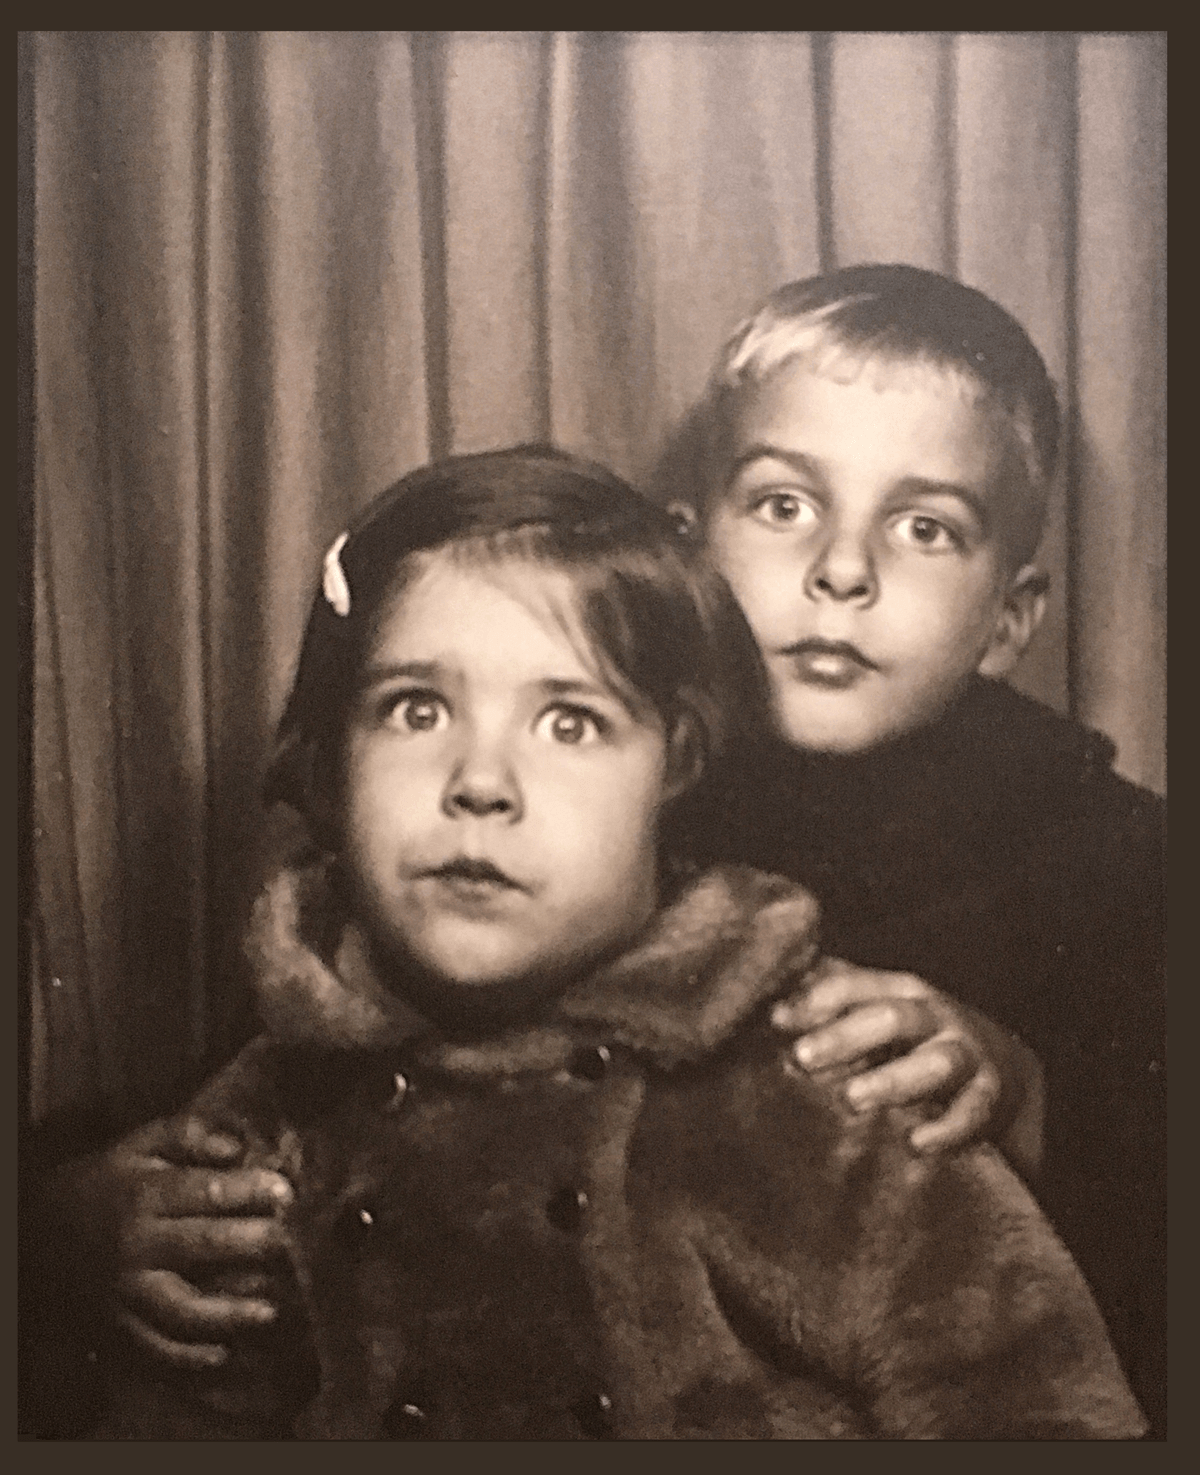 Photo booth picture from 1971